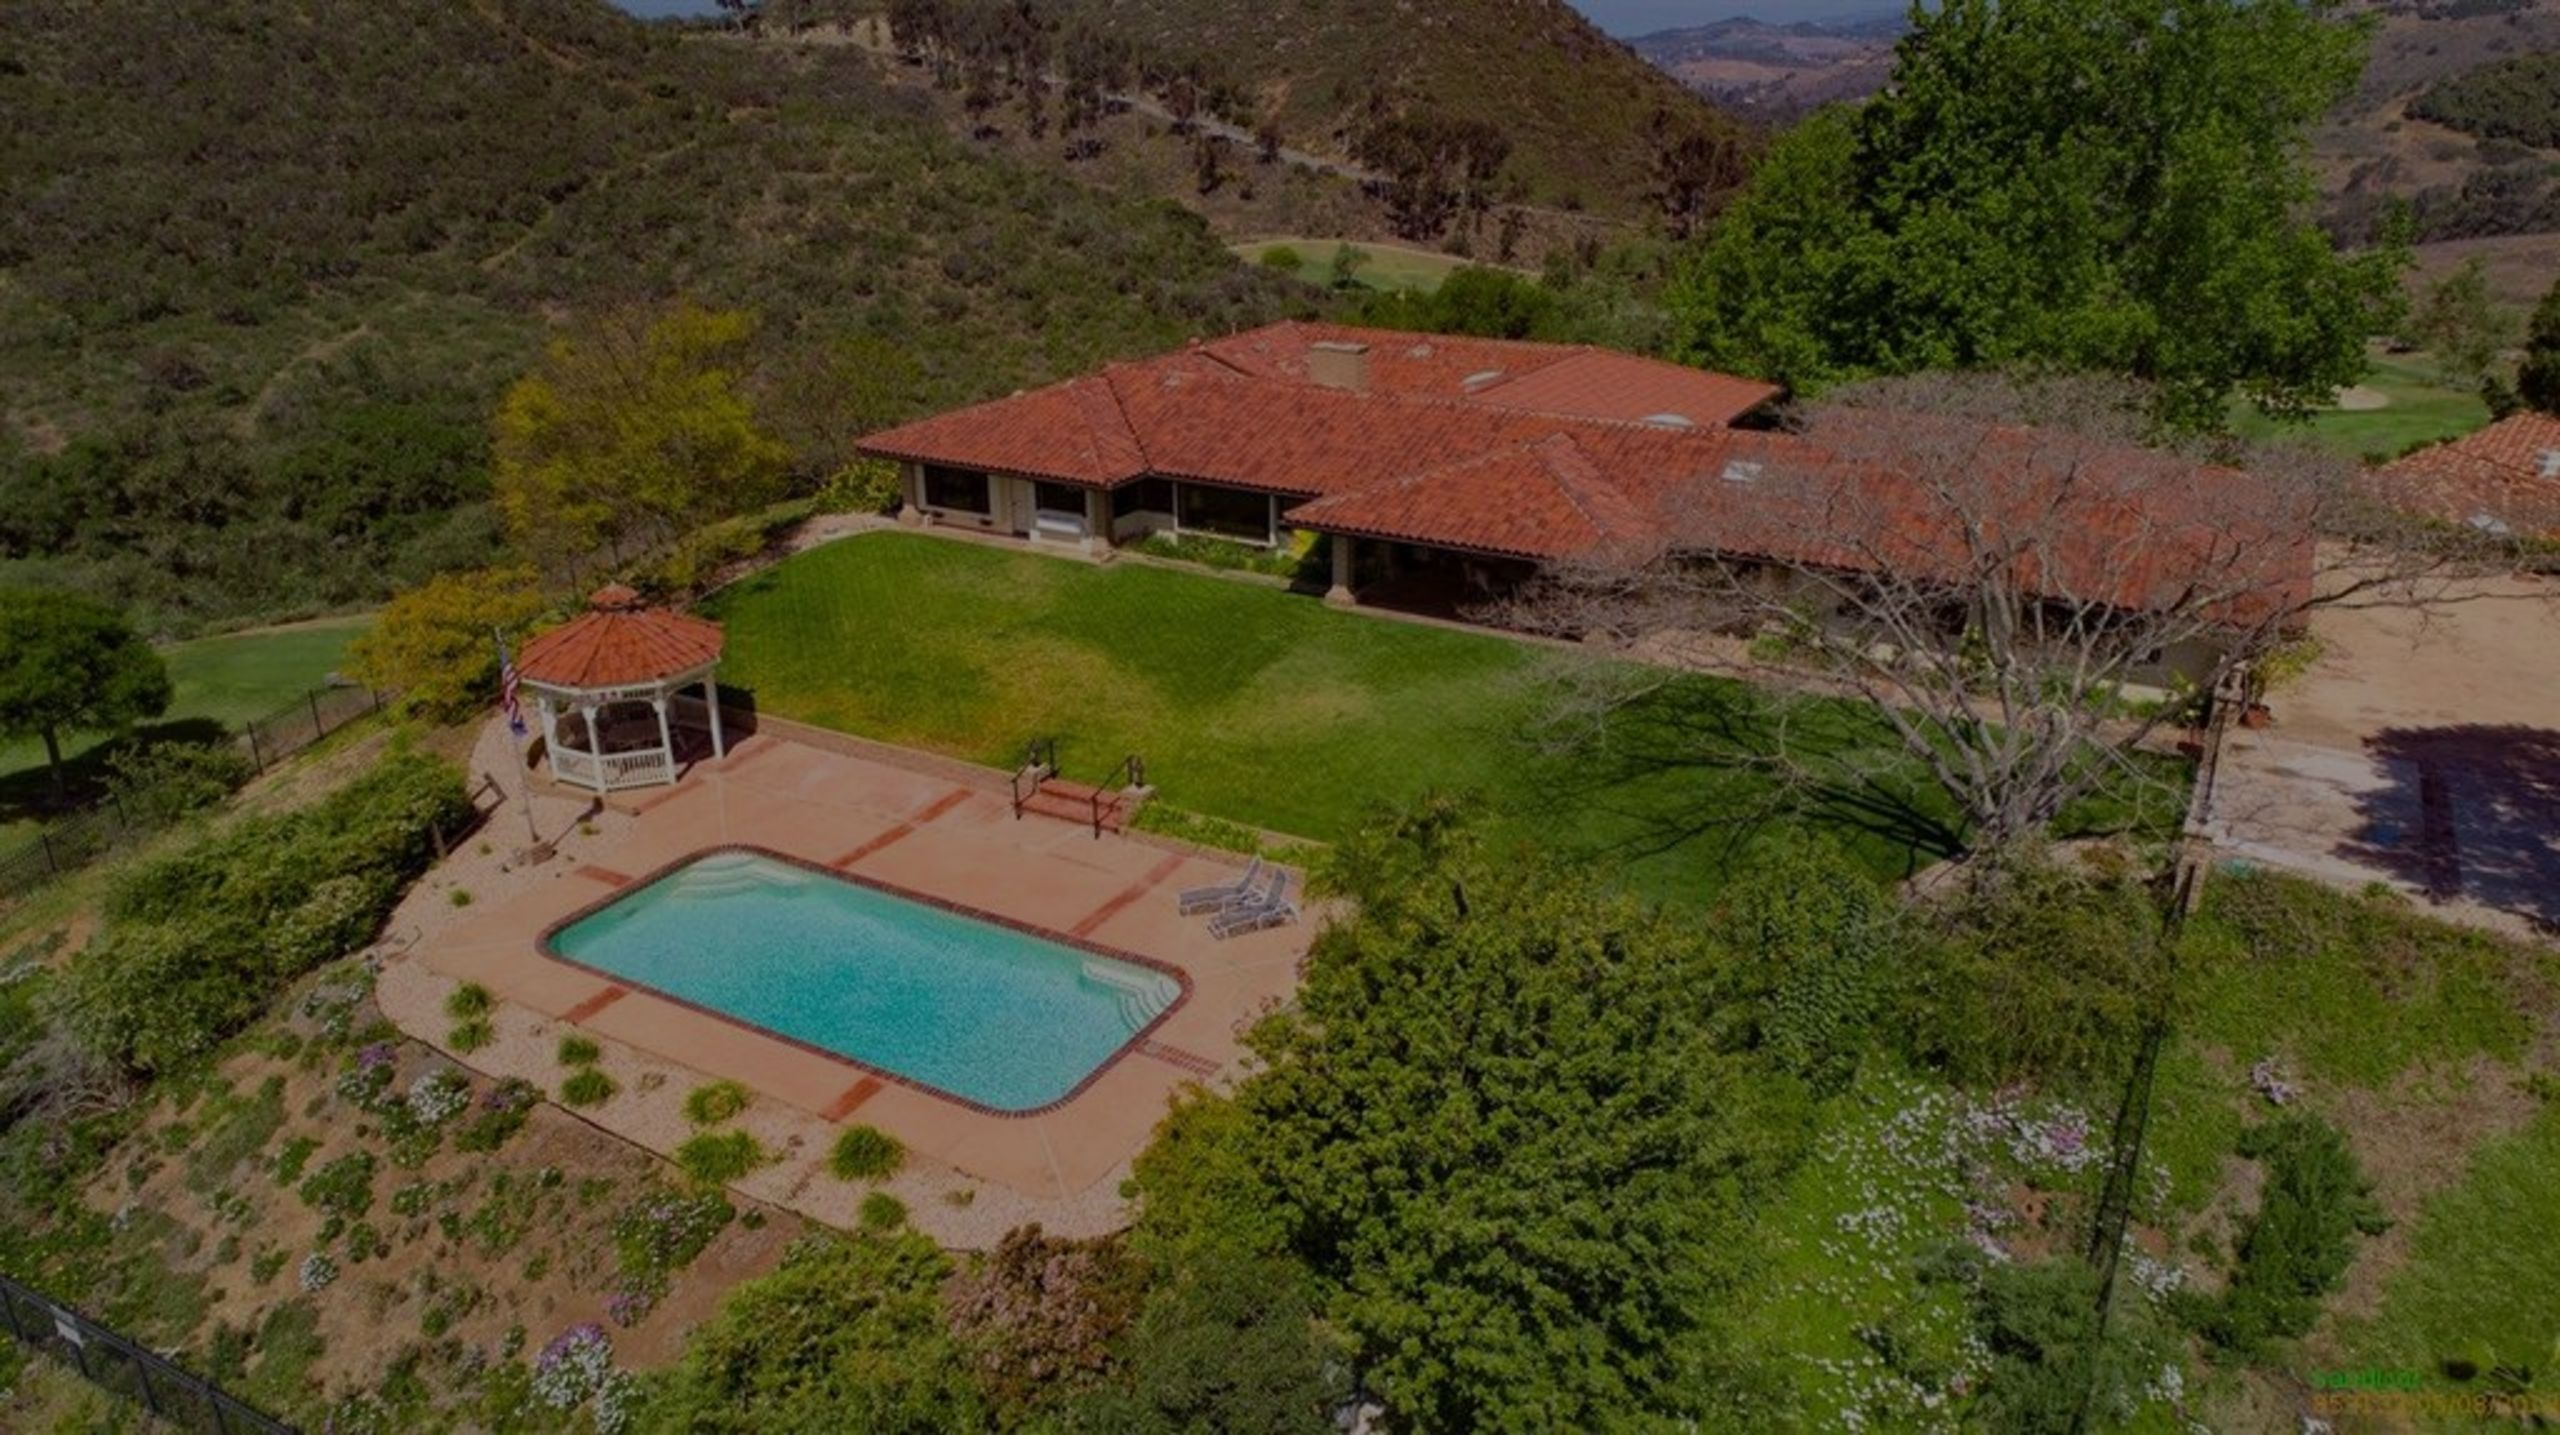 SOLD! Premier location on Vista Valley Golf Course